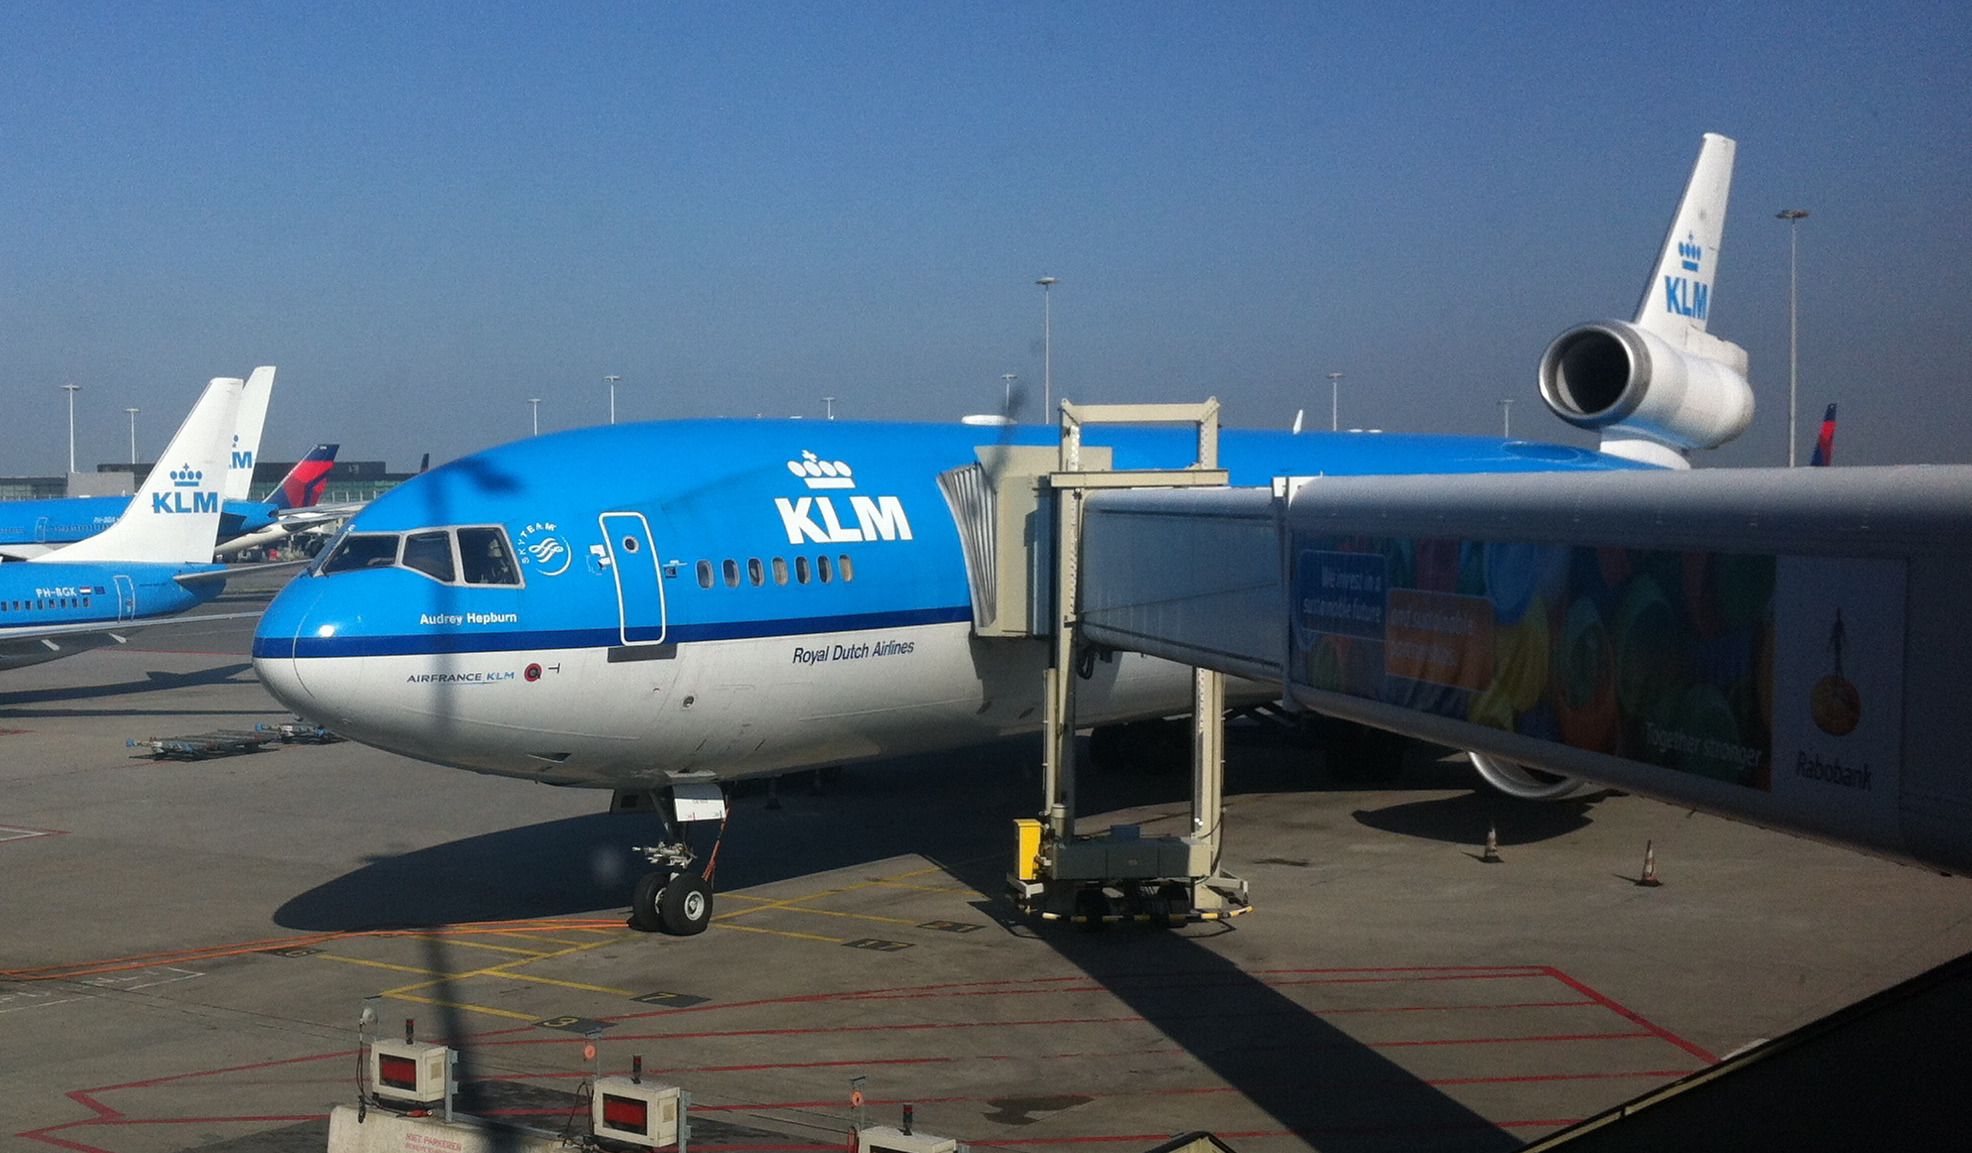 A historical aircraft type for a historical airline, KLM soon to retire its MD-11 aircraft